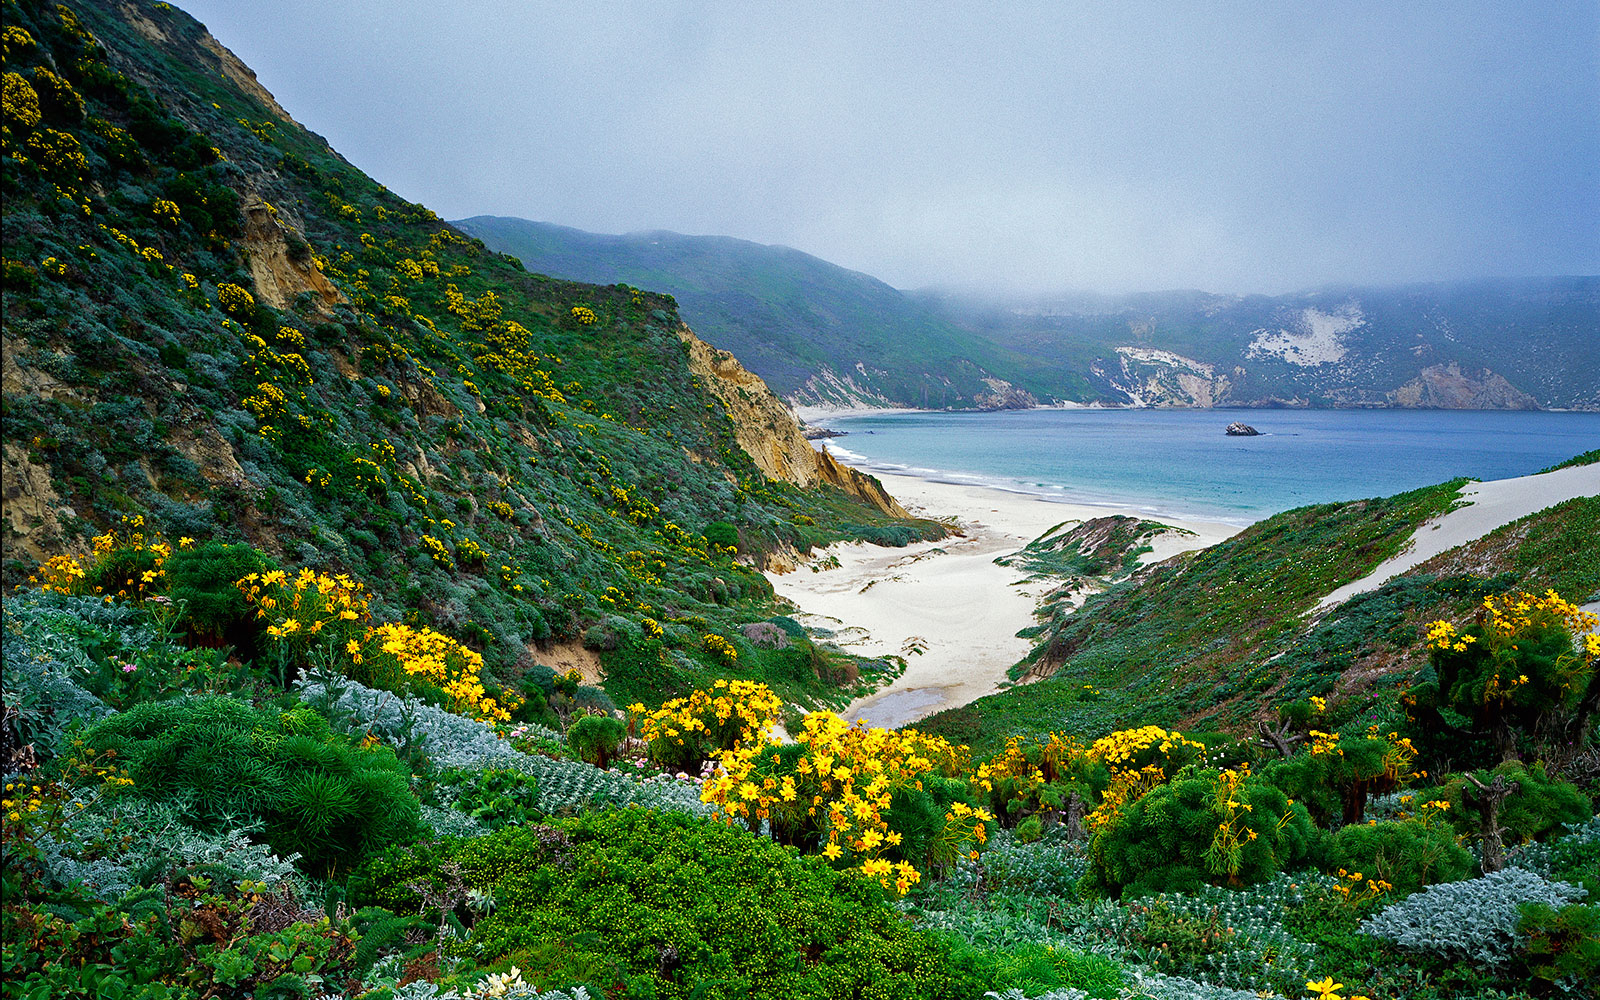 Channel Islands National Park in Channel Islands, California